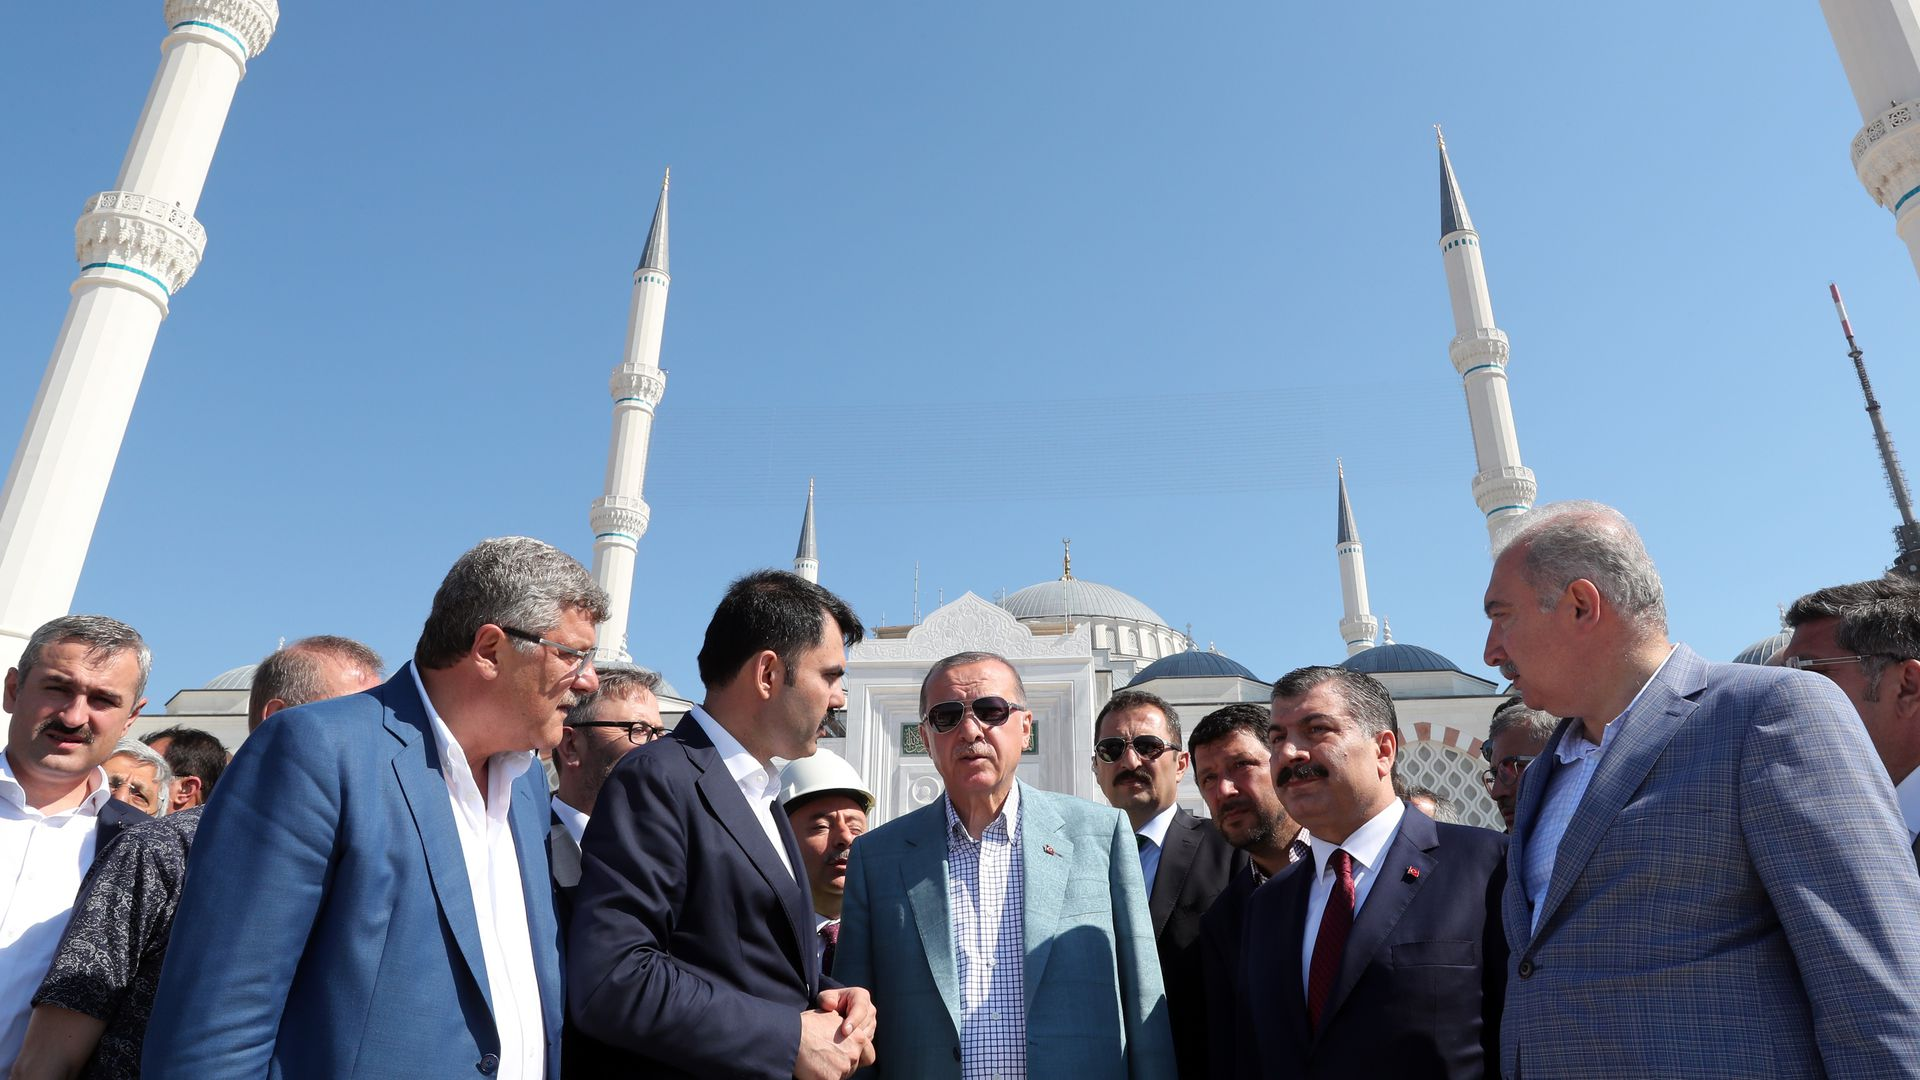 Turkish President Erdogan receives information about the current construction process of the Camlica Mosque from an engineer in Istanbul, Turkey on August 05, 2018.